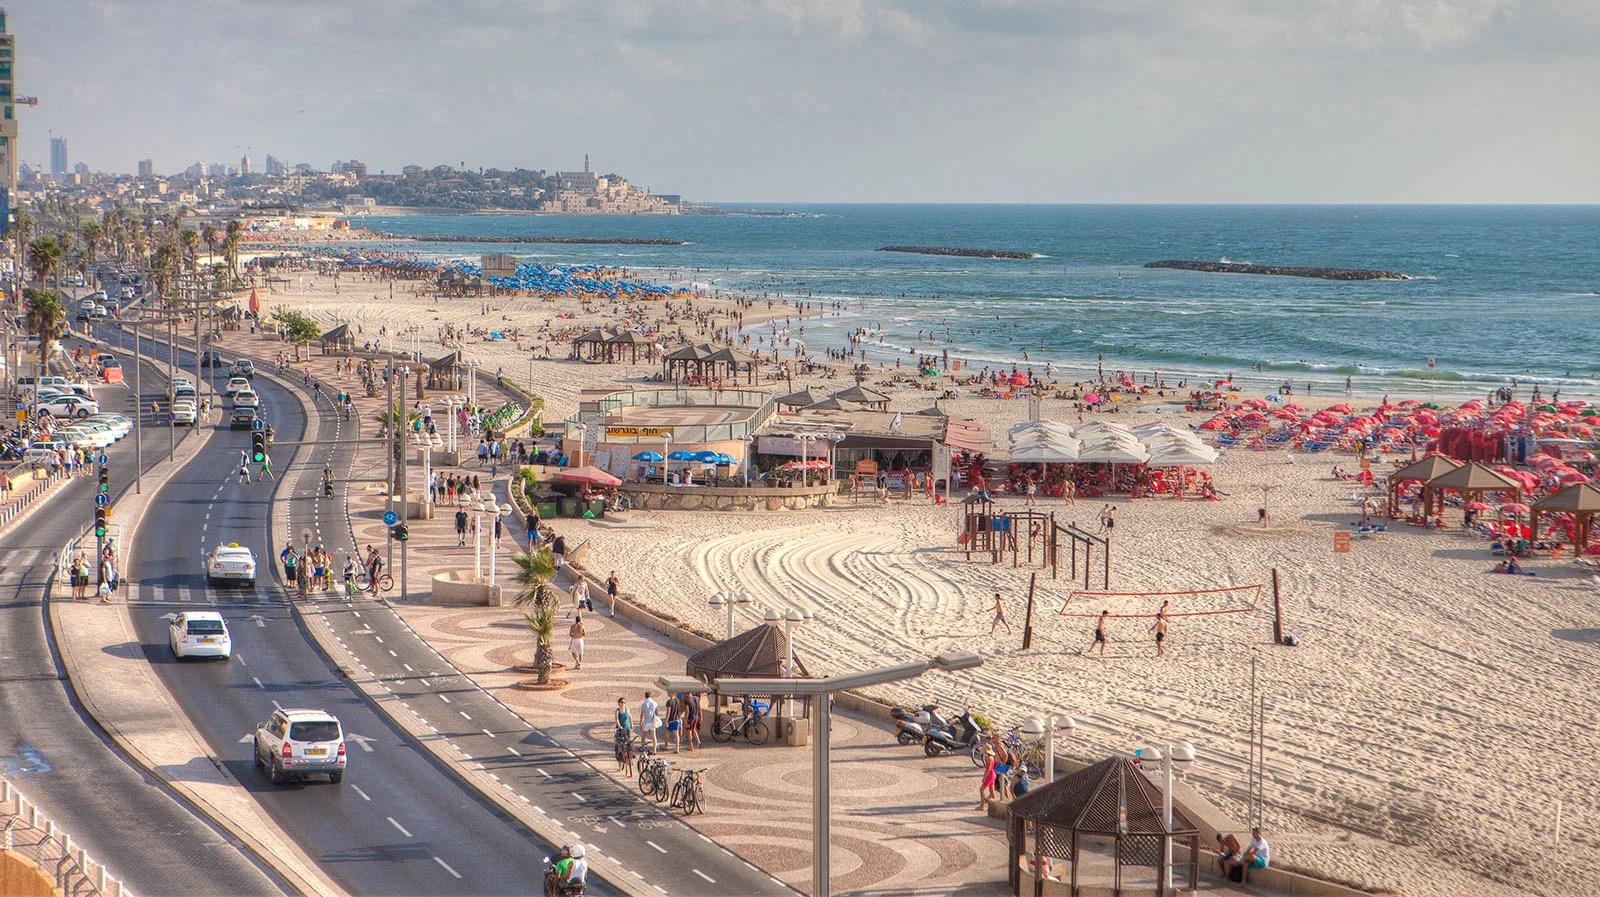 Flights from Dallas to Tel Aviv now bookable on American Airlines